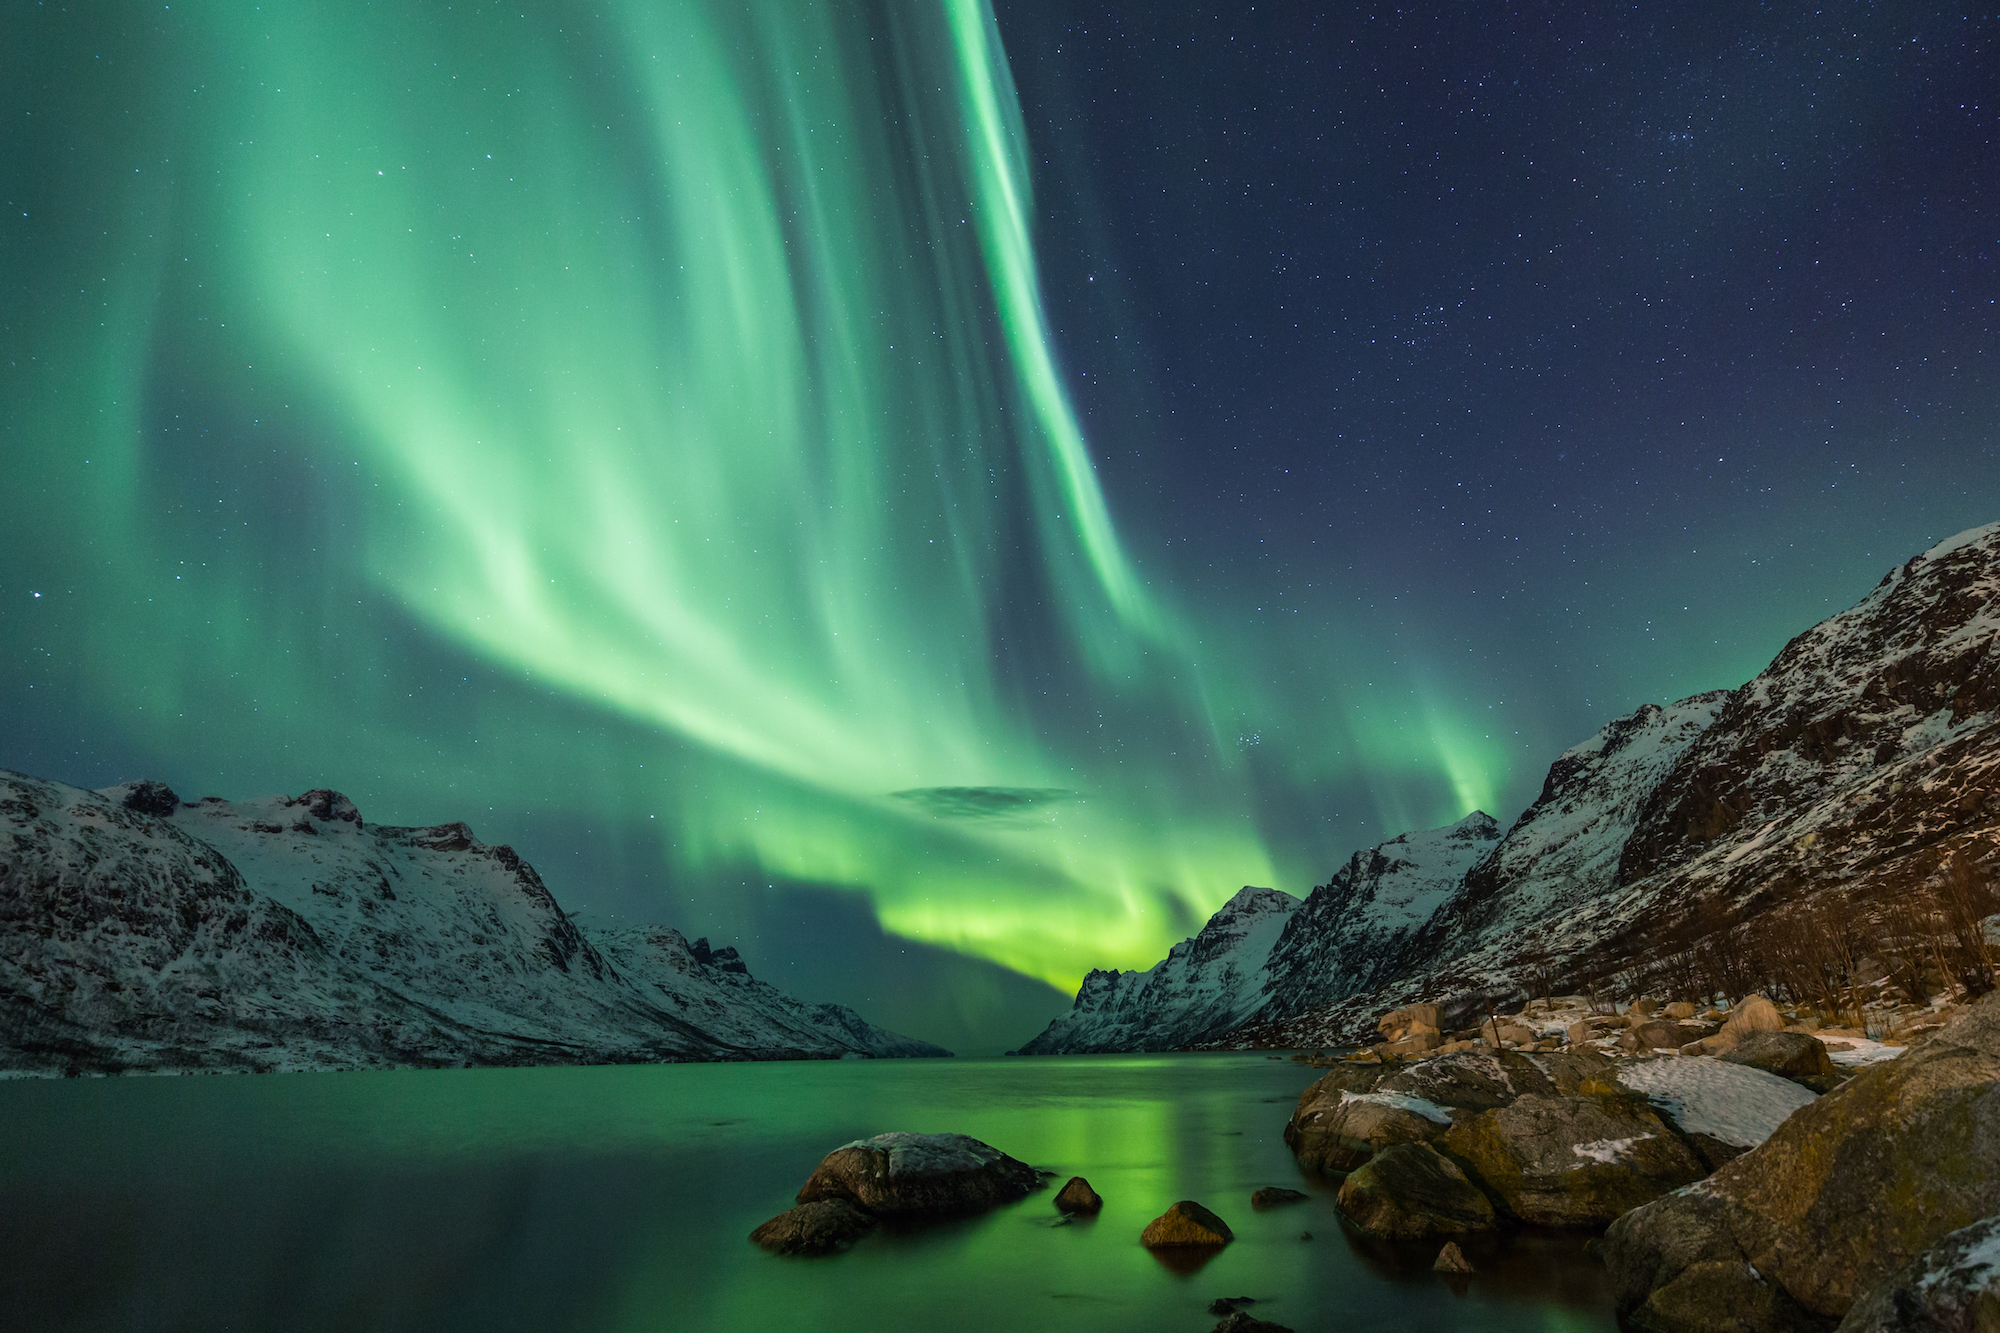 Live stream the Northern Lights from your couch tonight